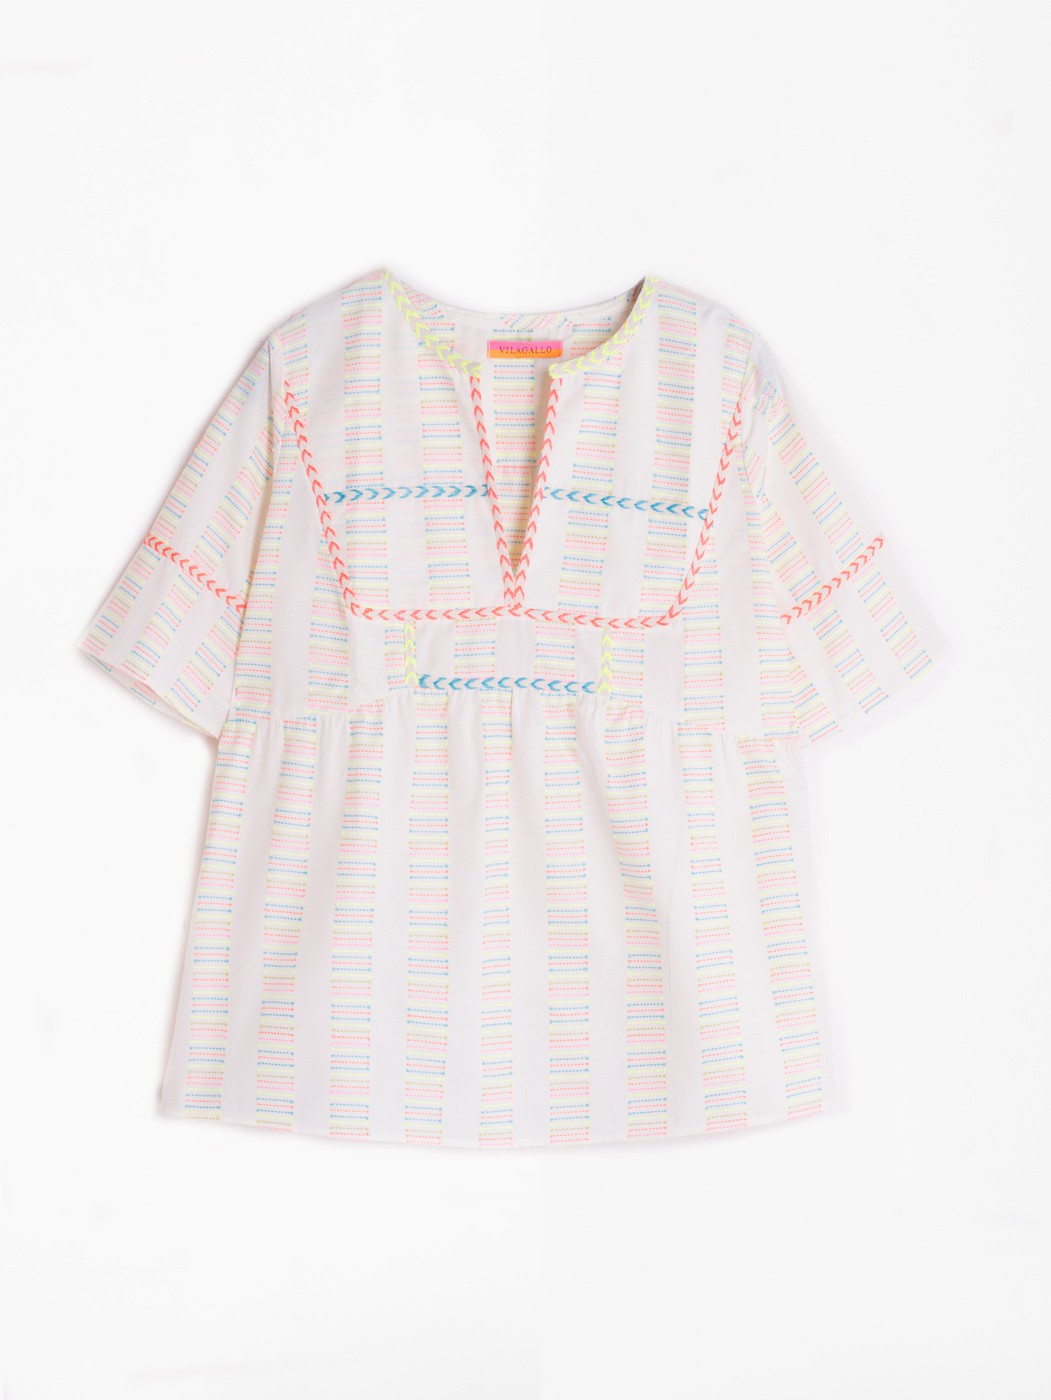 MAMCEY NONCUT SHIRT